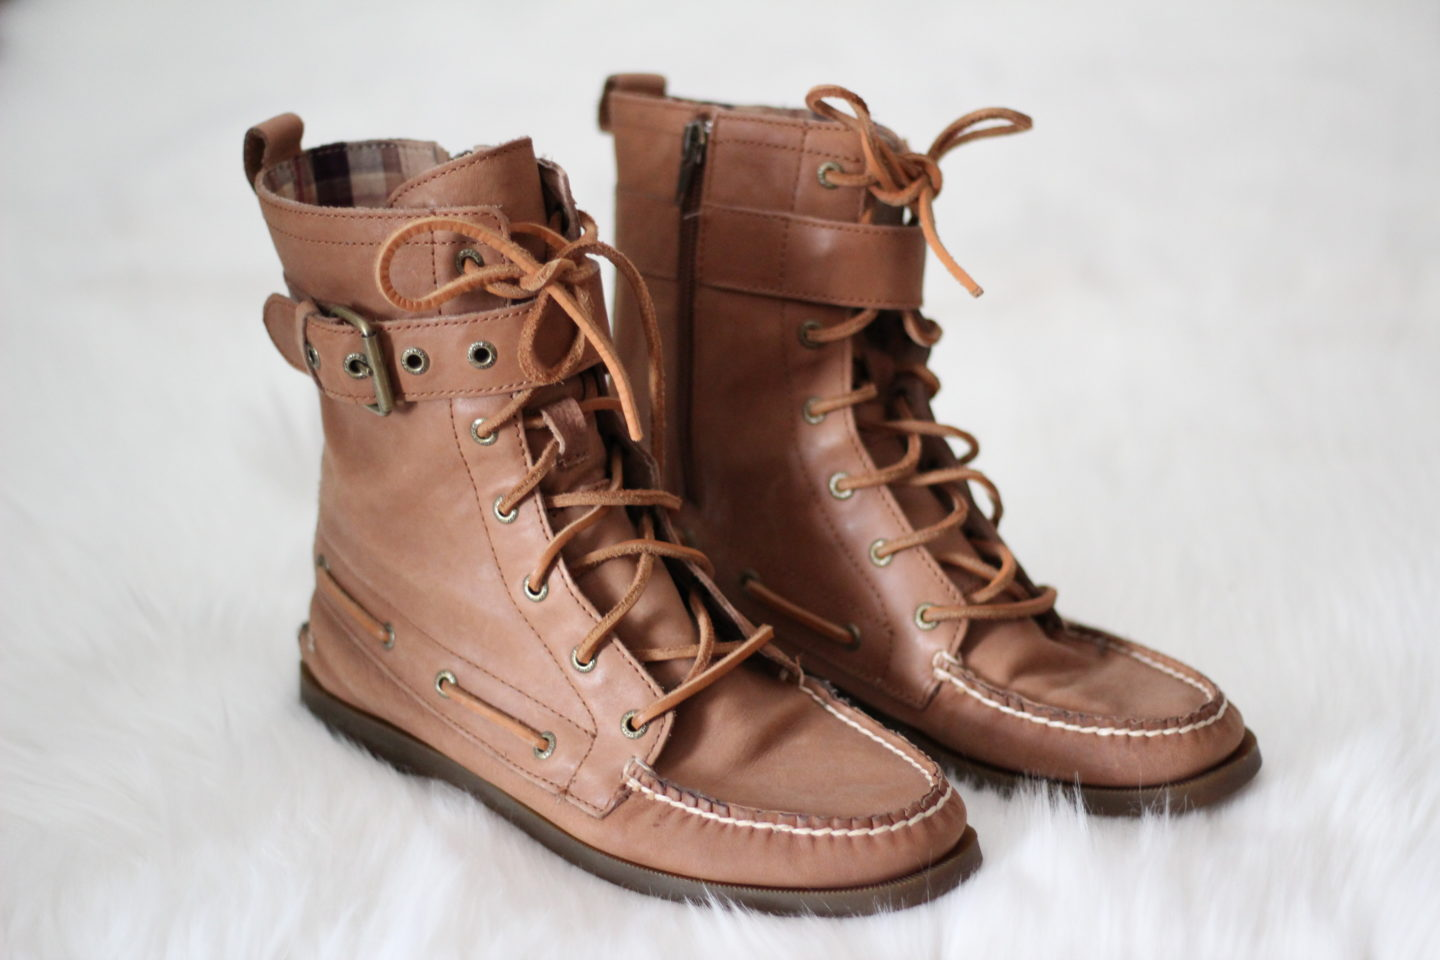 Sperry Boots - Chelsea de Castro - Fall and Winter Booties